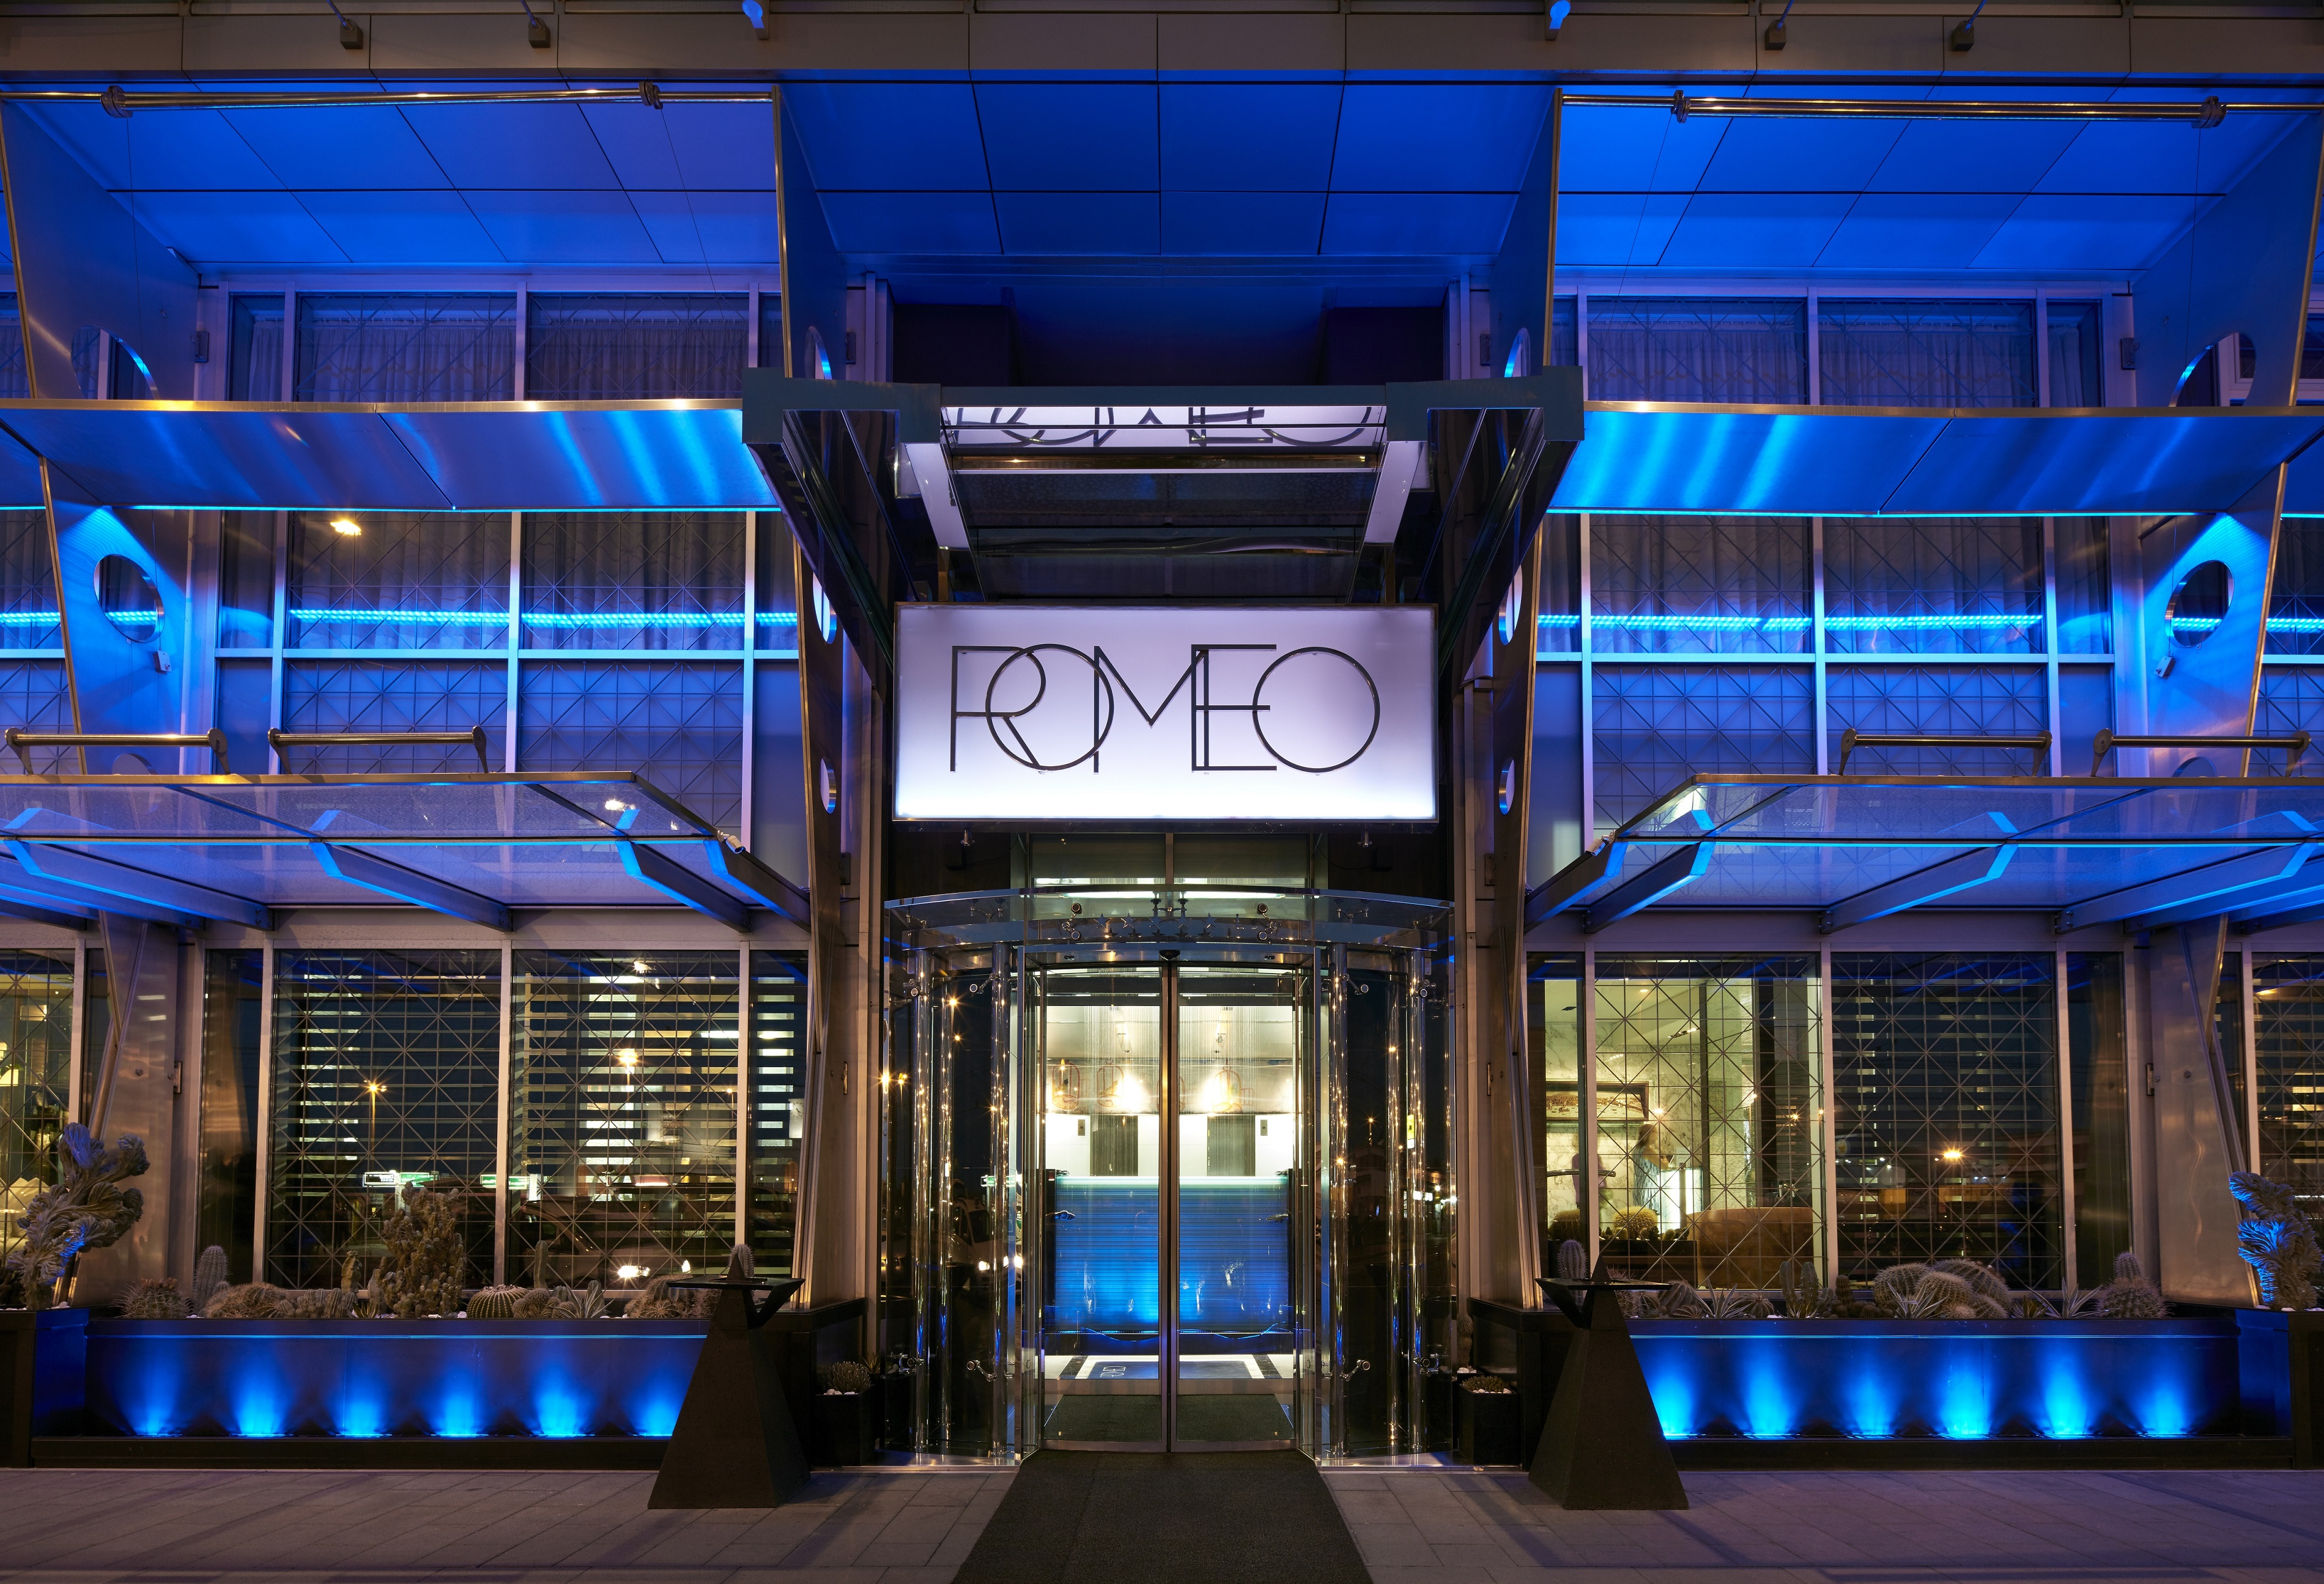 Romeo Hotel Napoli Joins the Lush Collection